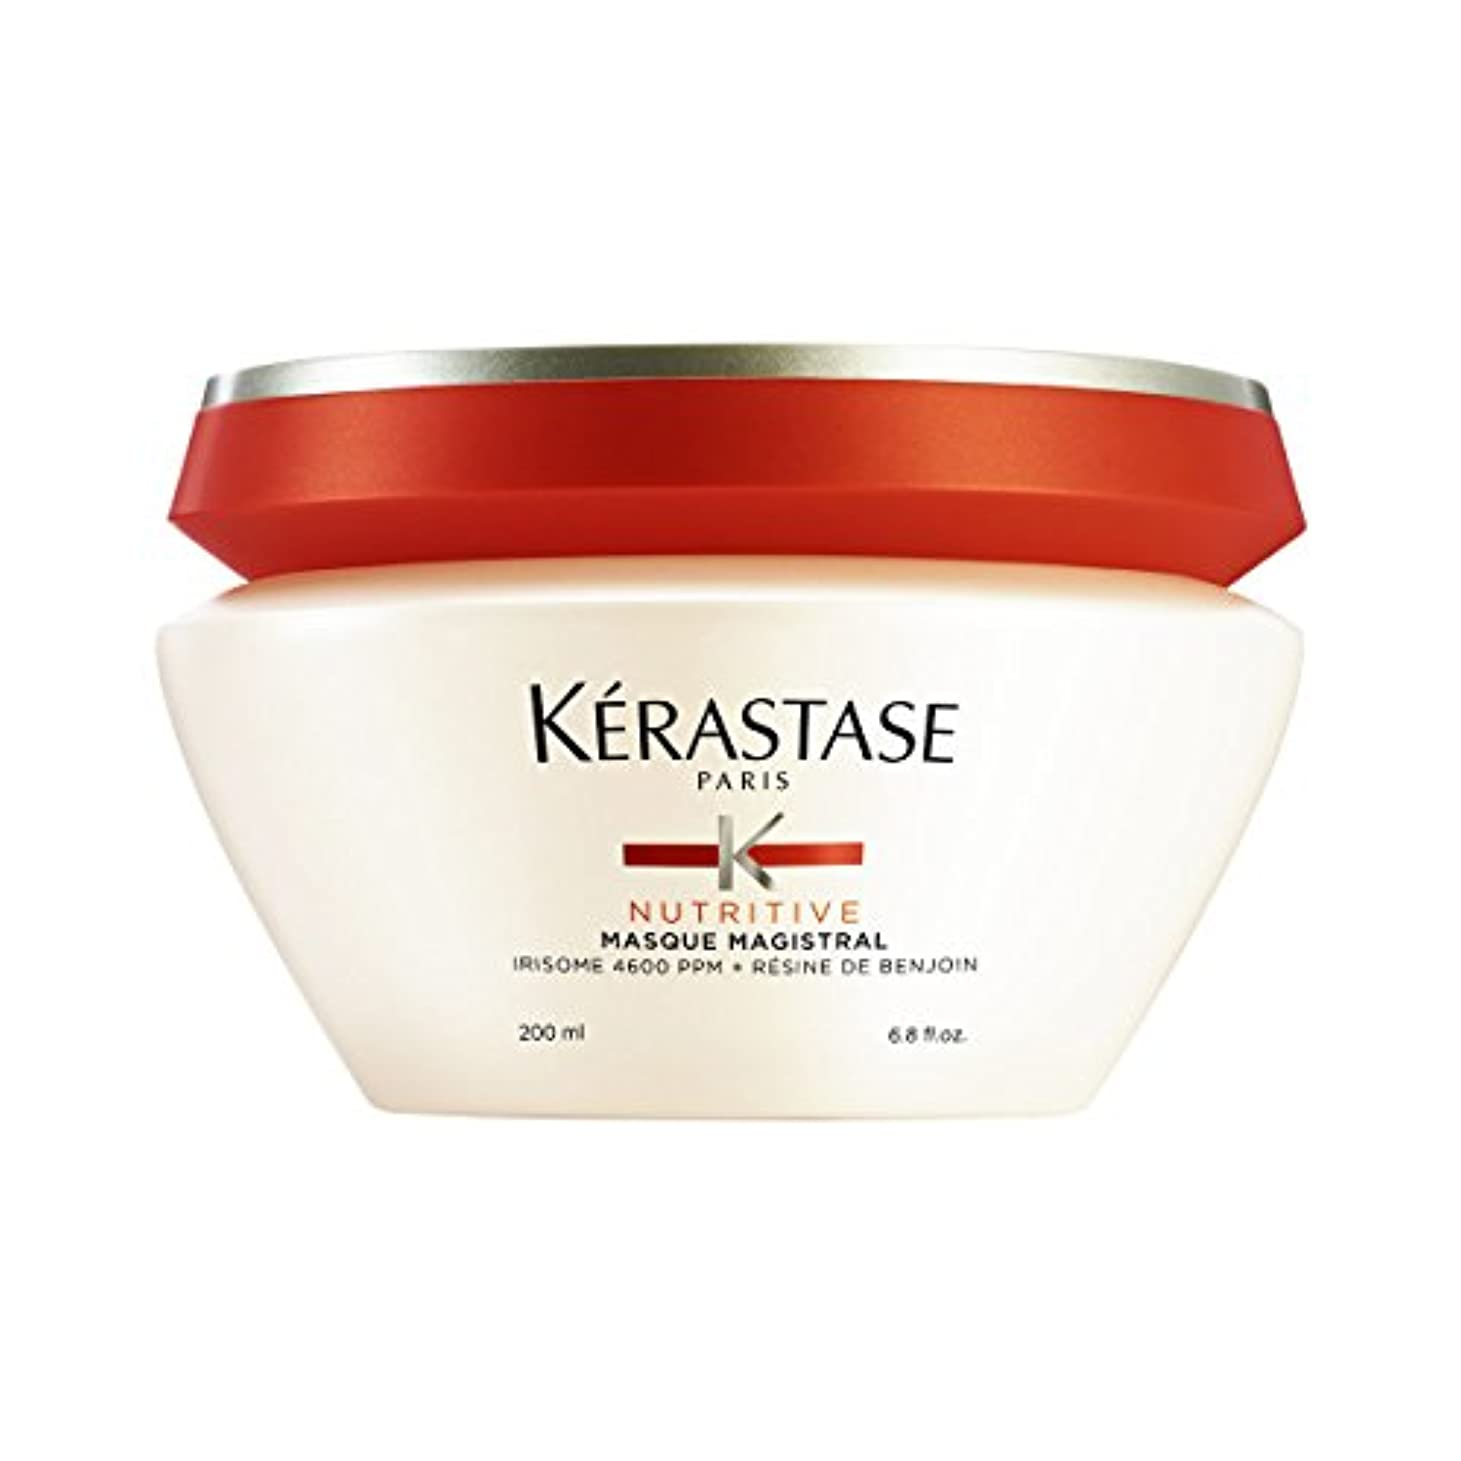 商人救い暗殺者K駻astase Nutritive Masque Magistral Hair Mask 200ml [並行輸入品]